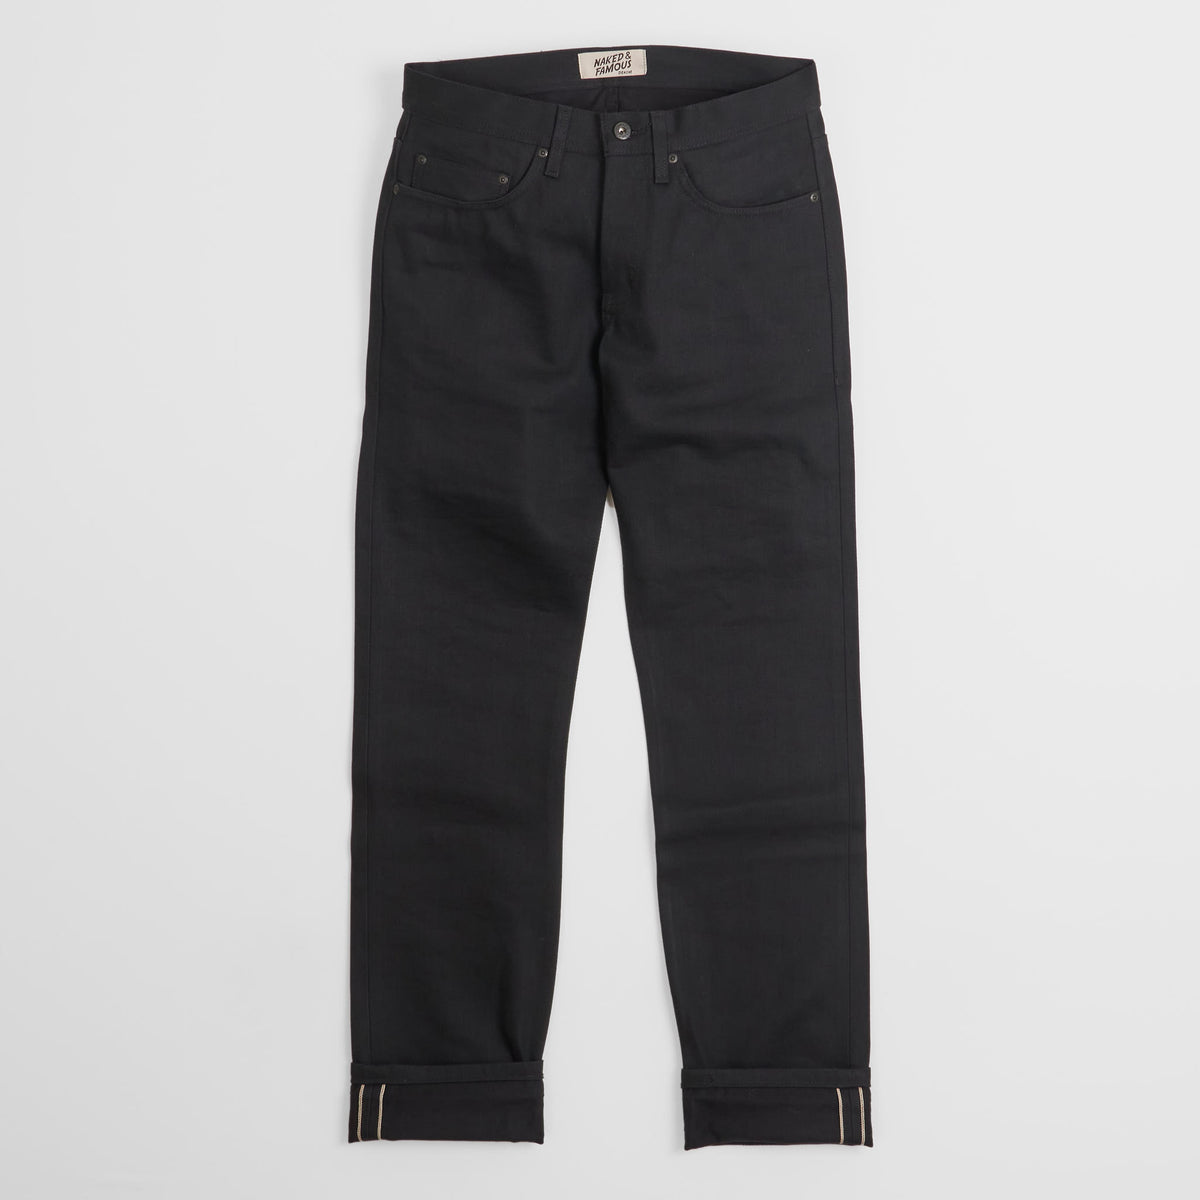 Naked & Famous Black Denim Weird Guy